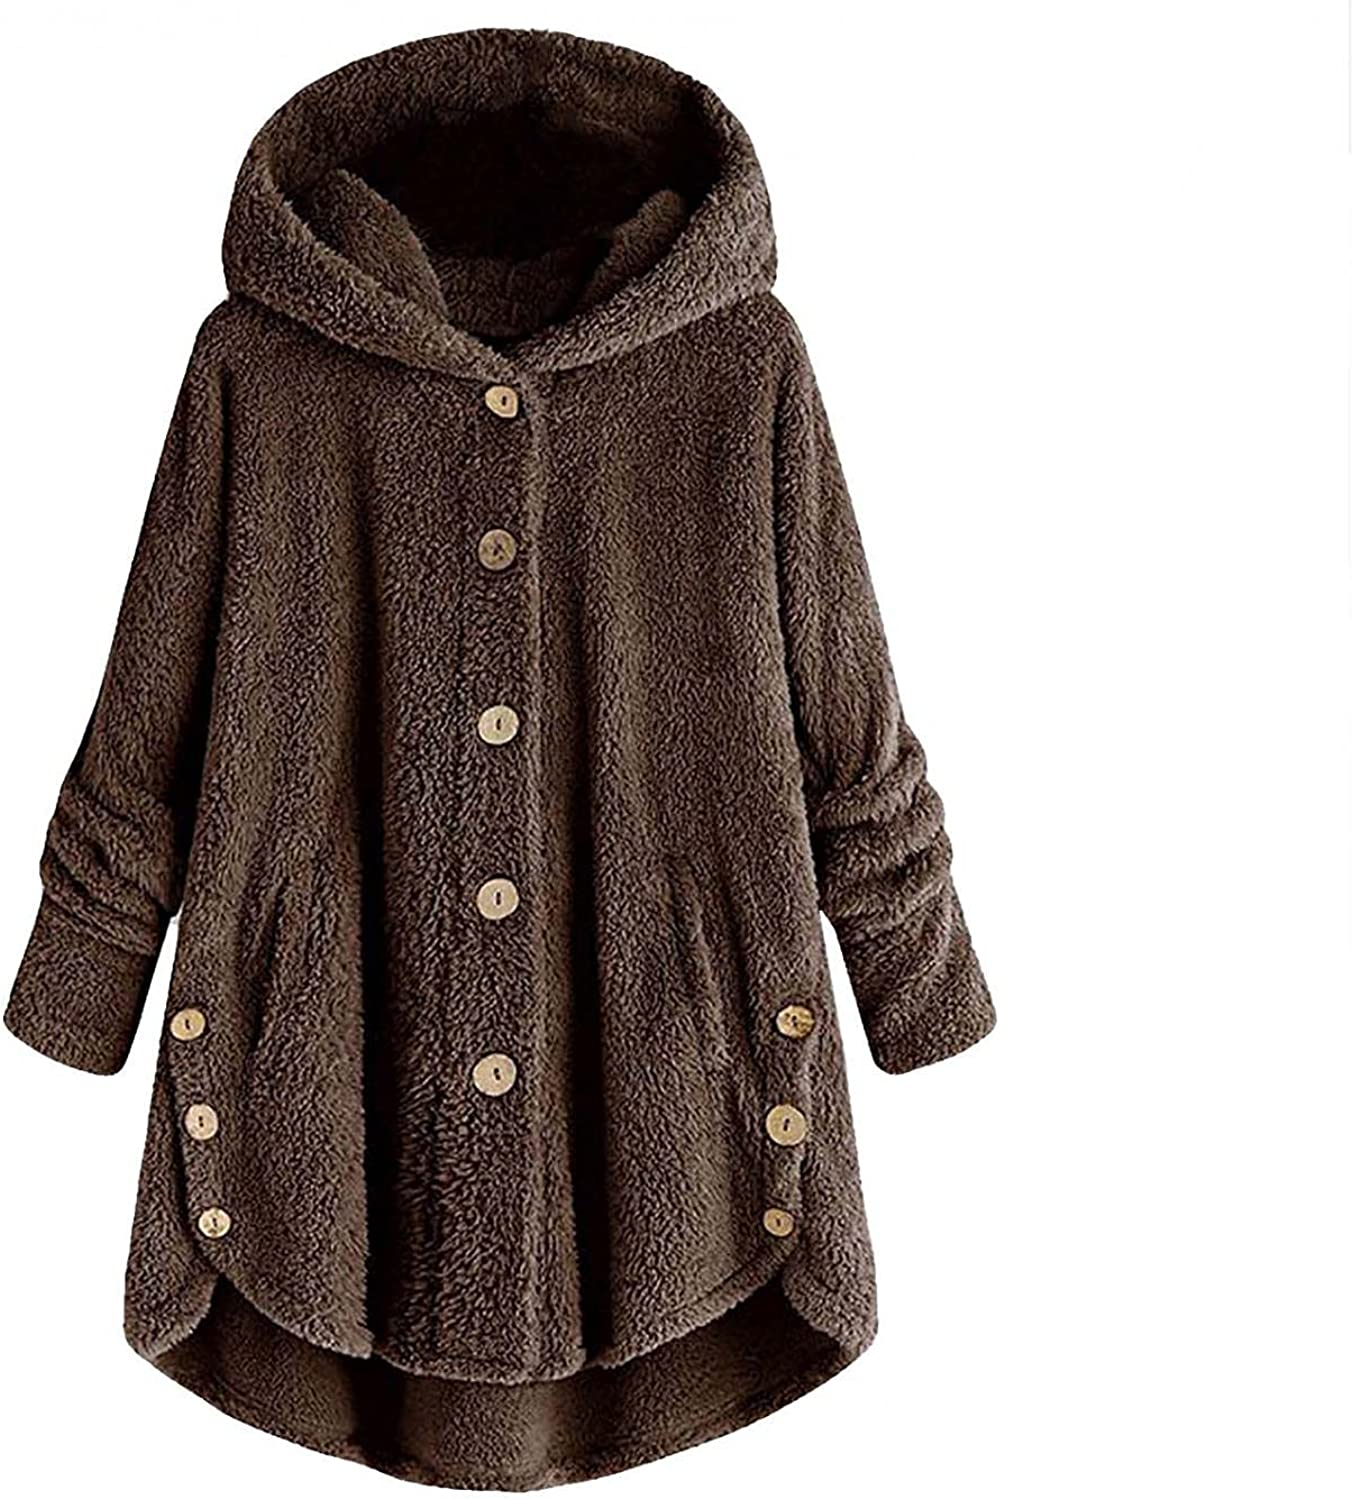 Women's Thick Fleece Jacket Button Coats Patchworl Top Hooded Pullover Loose Sweater Overcoat Plus Size Trench Outwear